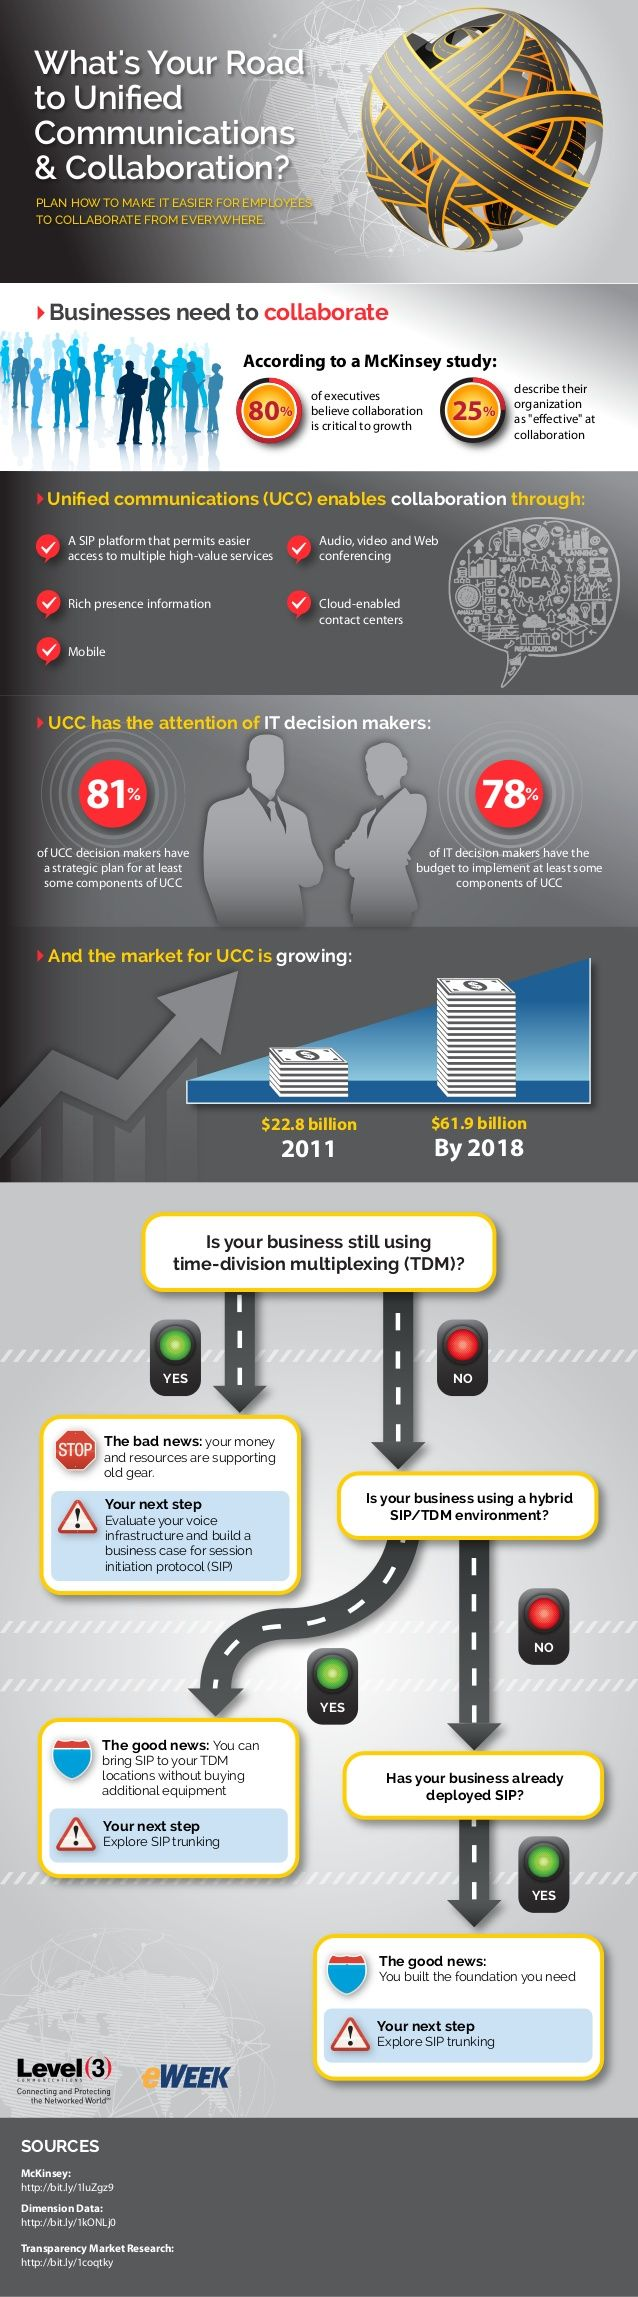 What's Your Road to Unified Communications & Collaboration? by Level 3 Communications via slideshare